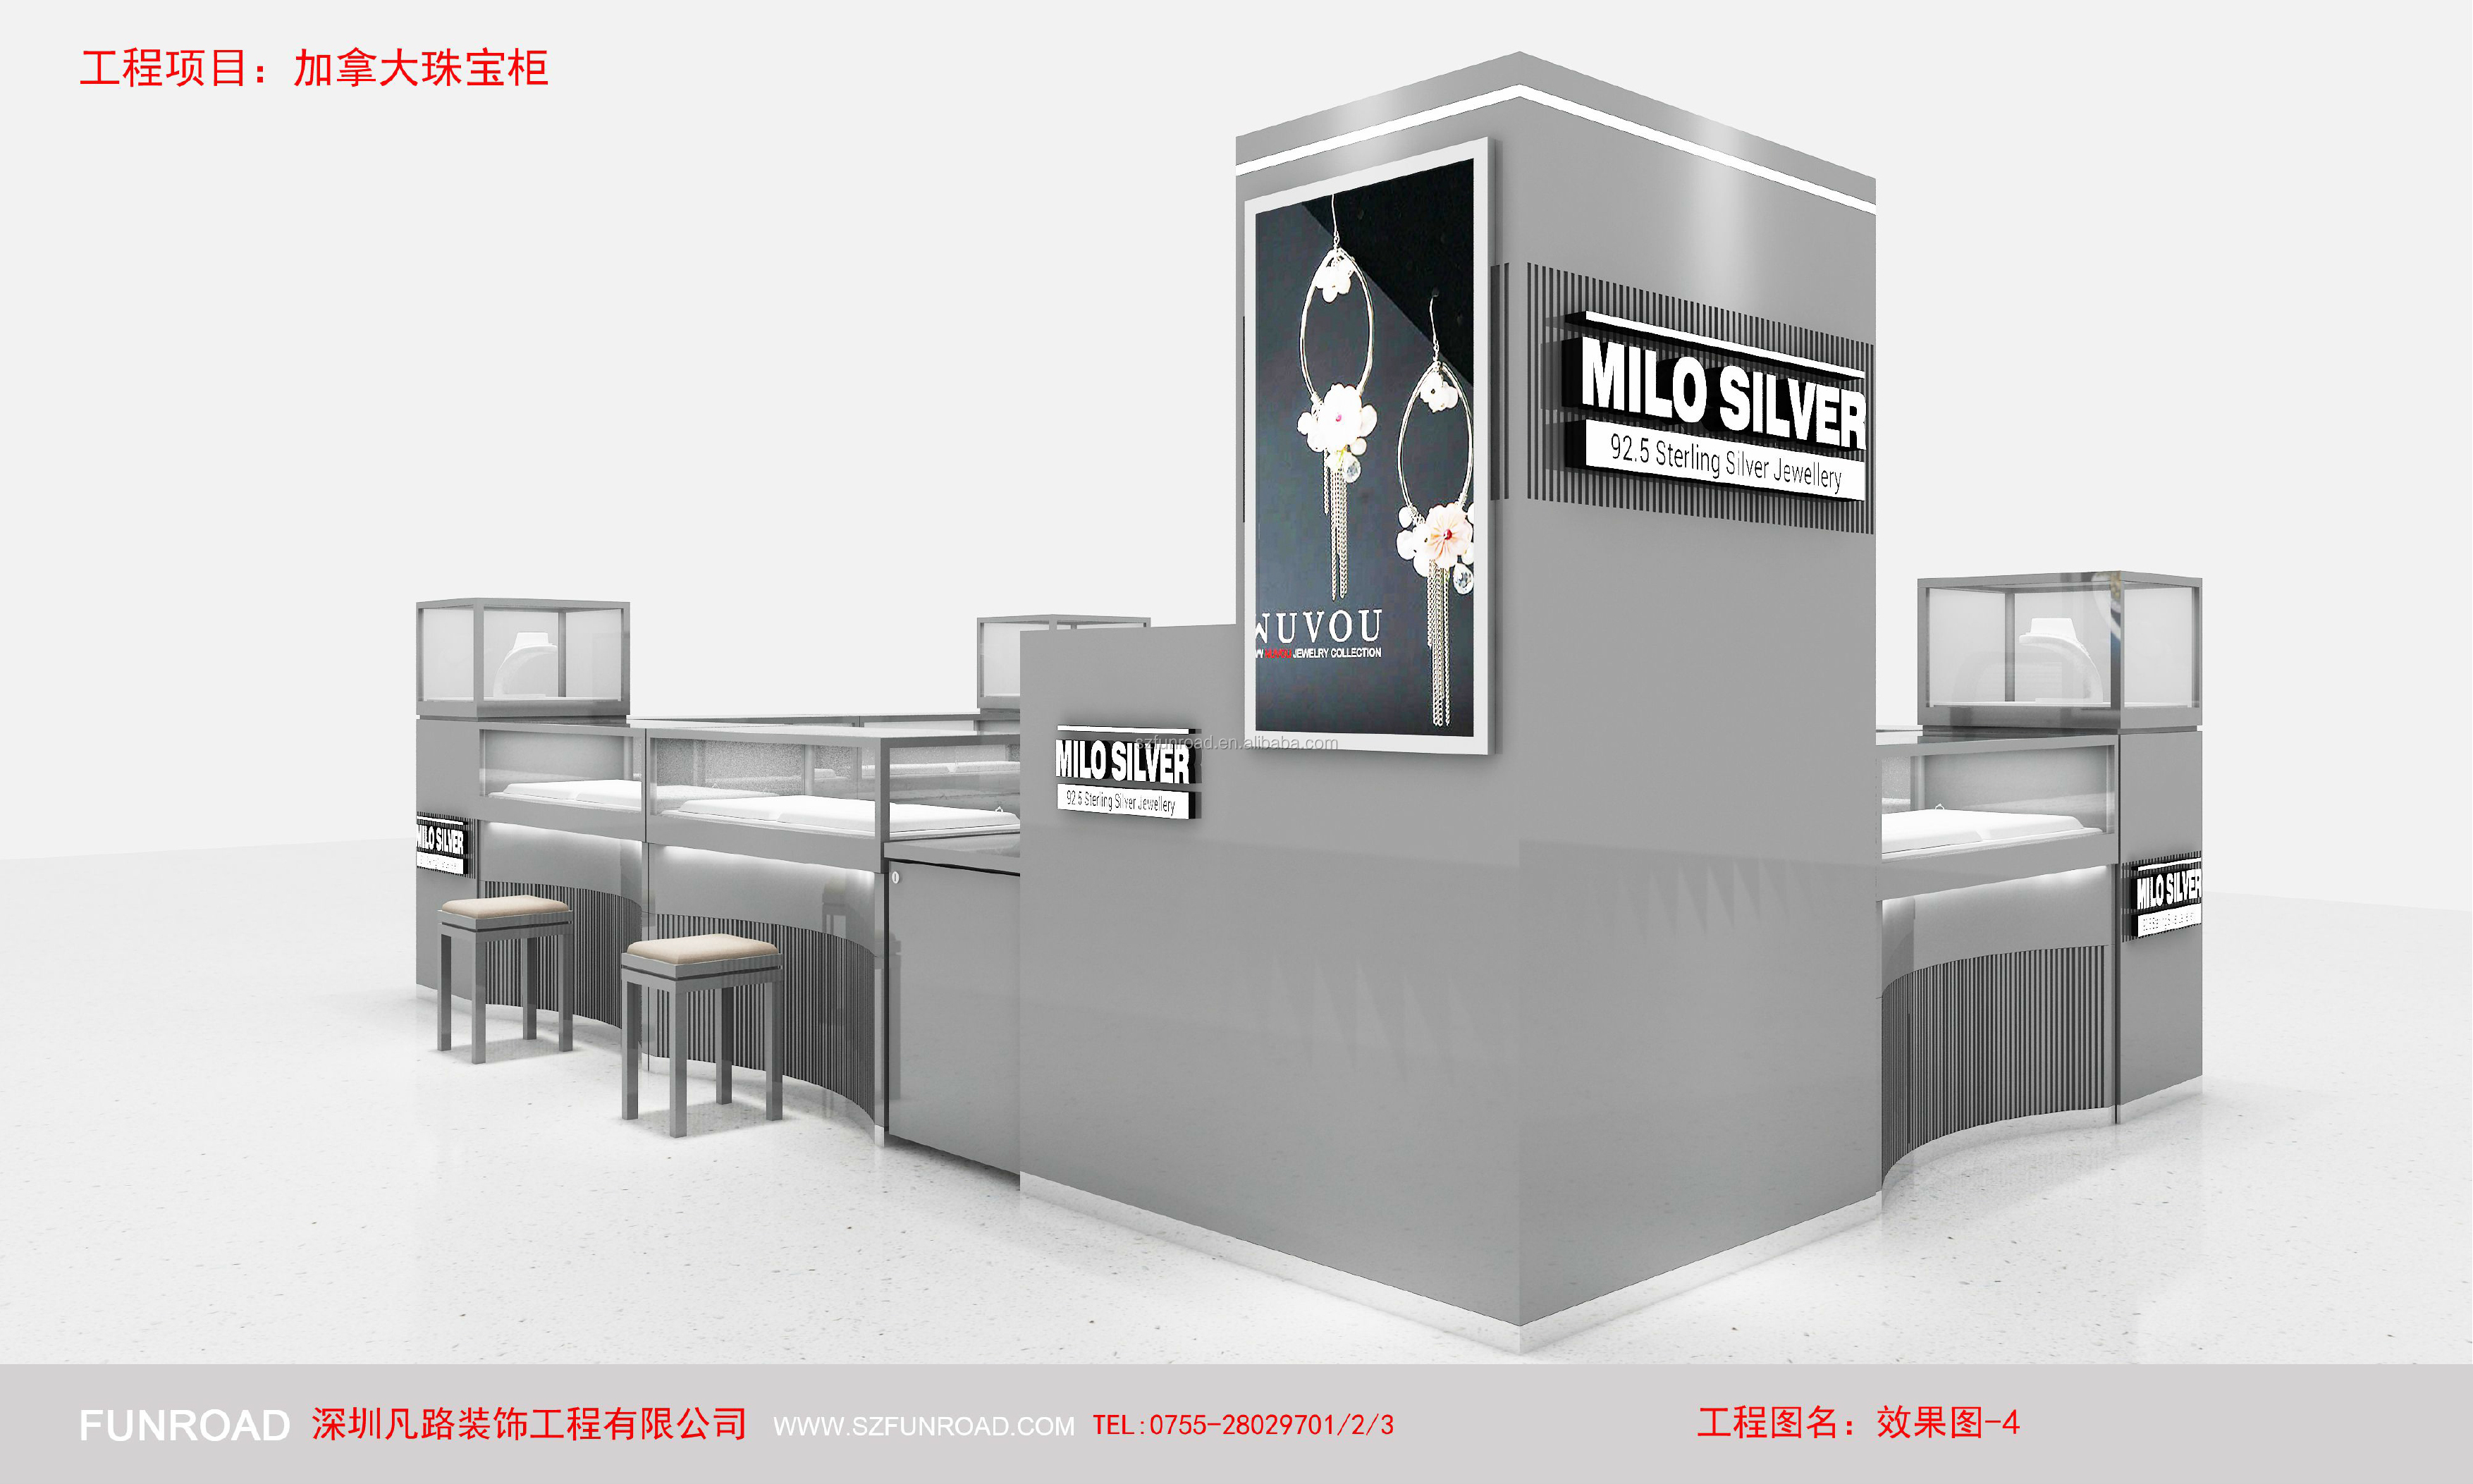 High End MDF material jewelry kiosk / showcase / counter design for jewelry handbag watch display